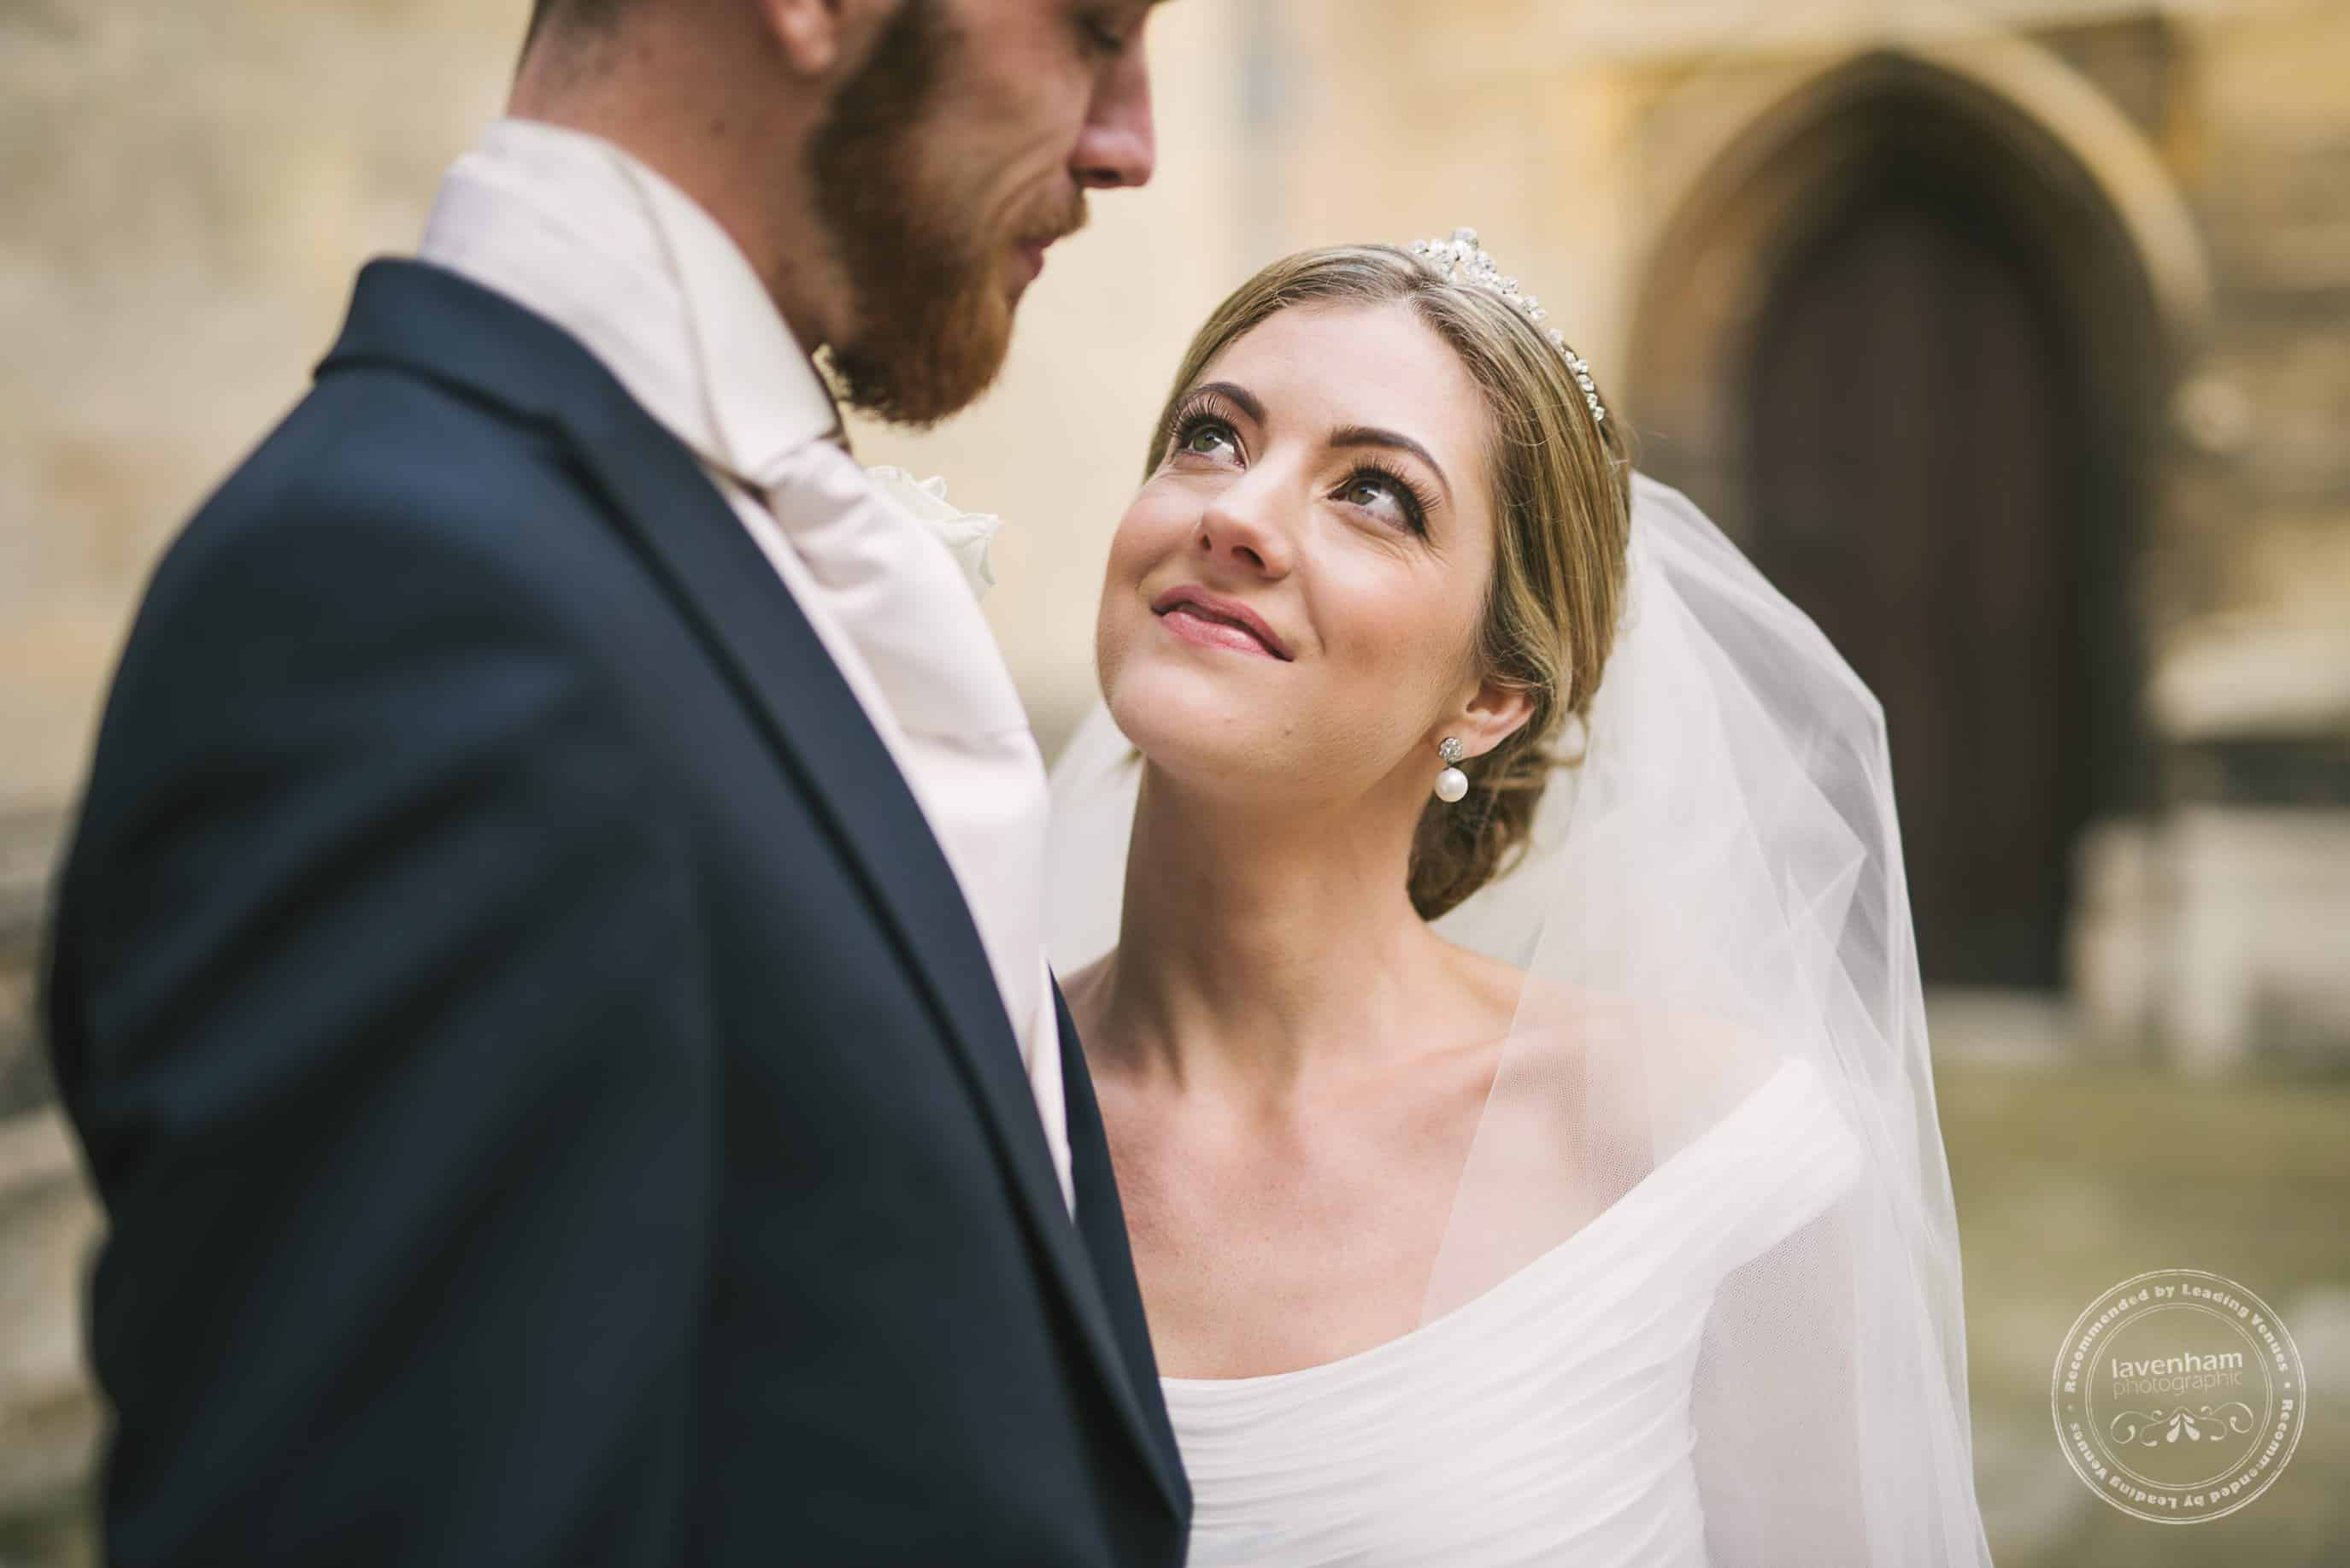 181116 Hengrave Hall Wedding Photographer 068